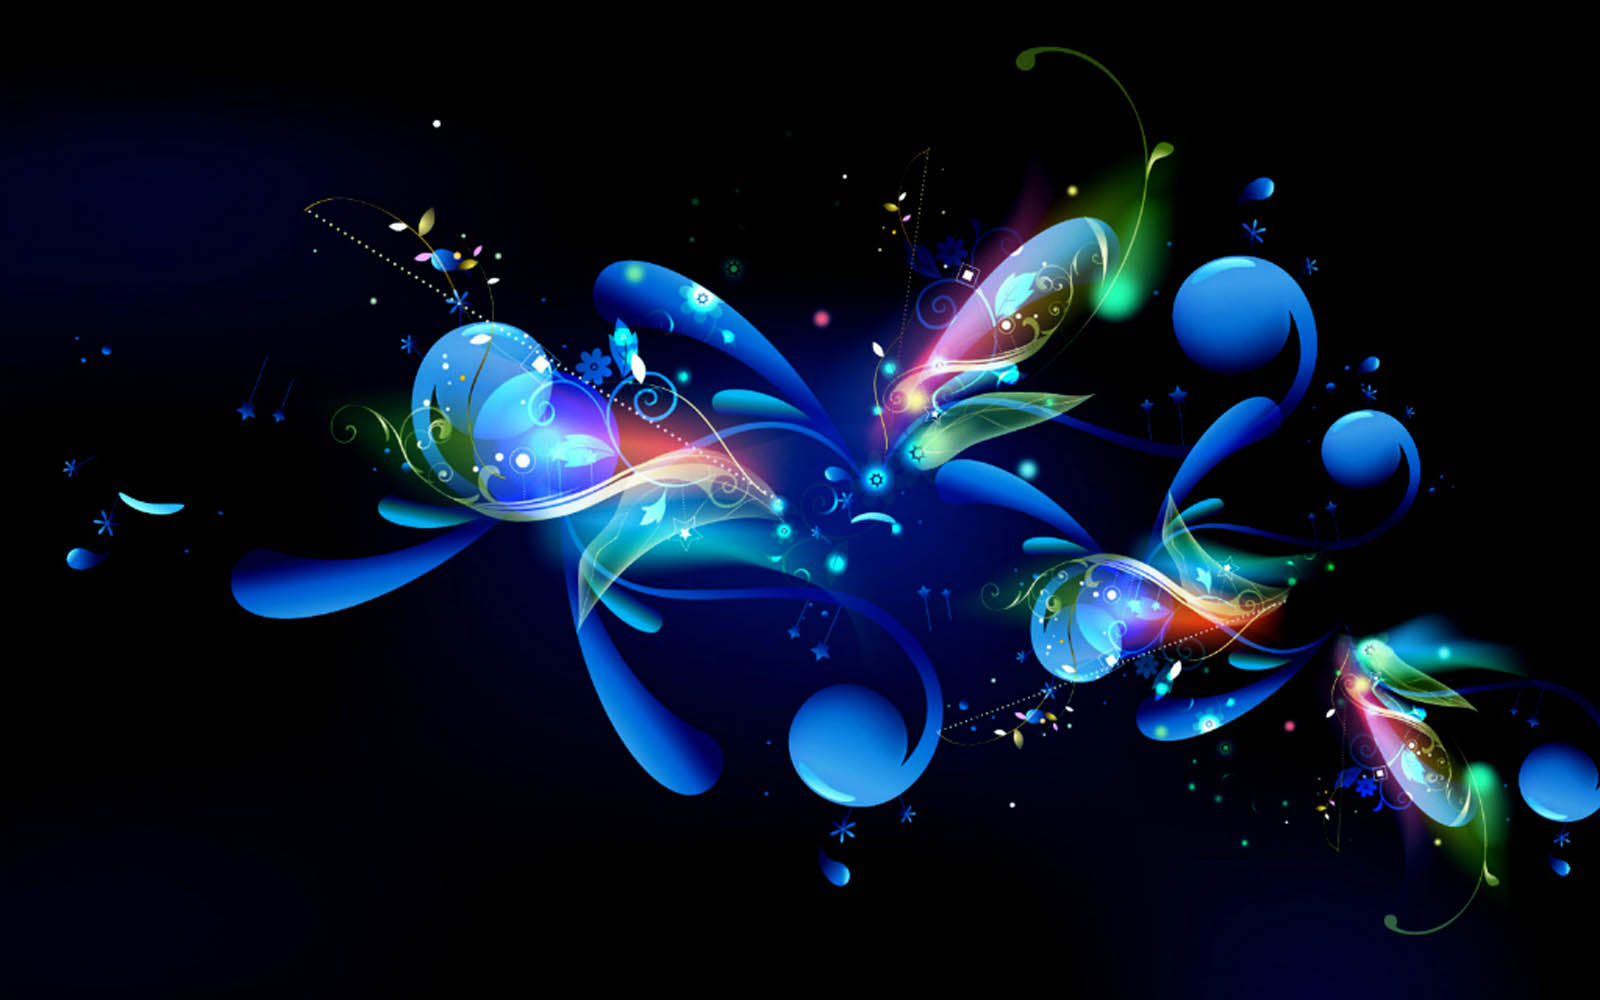 wallpapers Awesome Abstract Wallpapers 1600x1000